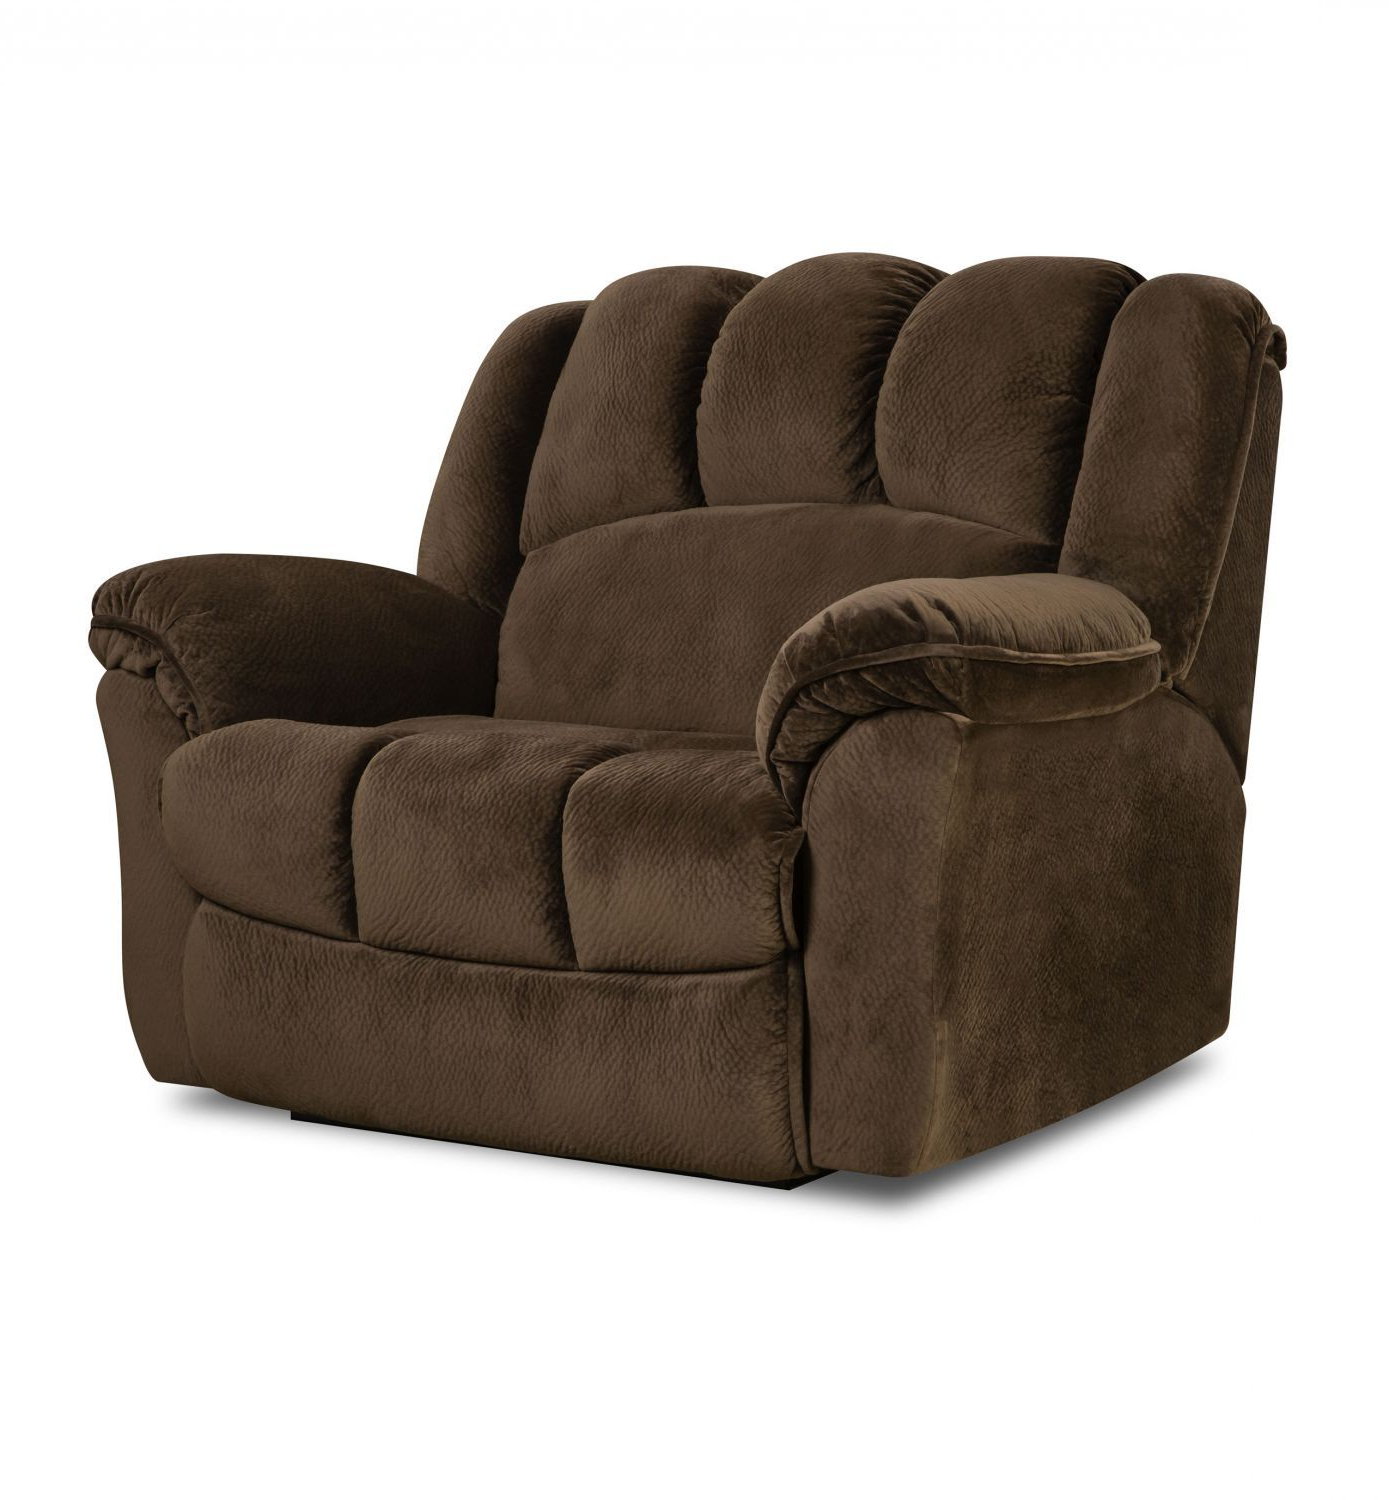 Popular This Oversized Snuggler Recliner Is Just Big Enough For Two Inside Extra Wide Recliner Lounge Chairs (View 22 of 25)